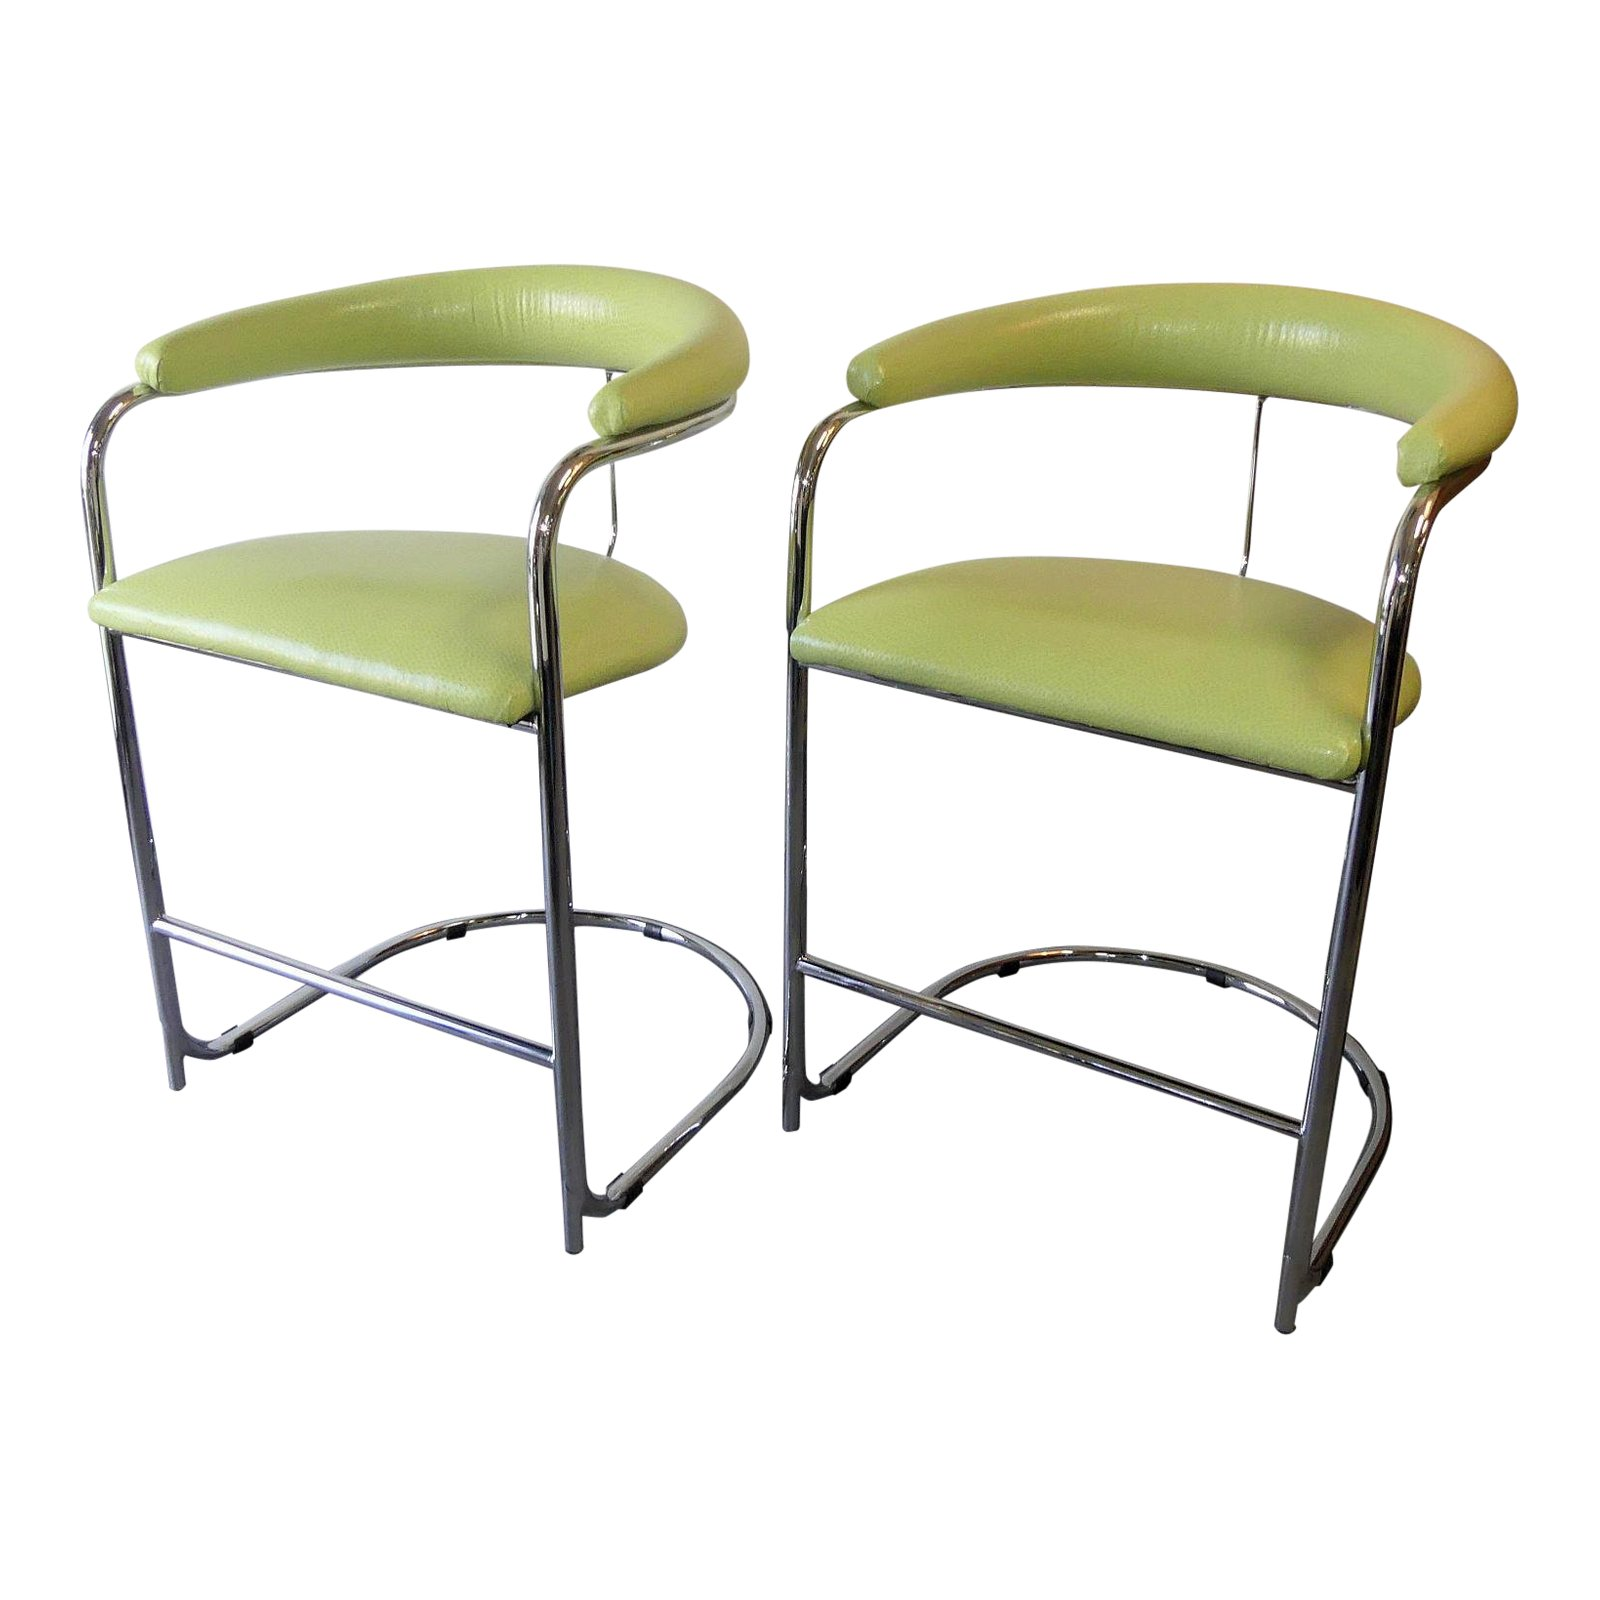 SOLD Pair of 2 Anton Lorenz for Thonet Tubular Chromed Steel Counter Stools